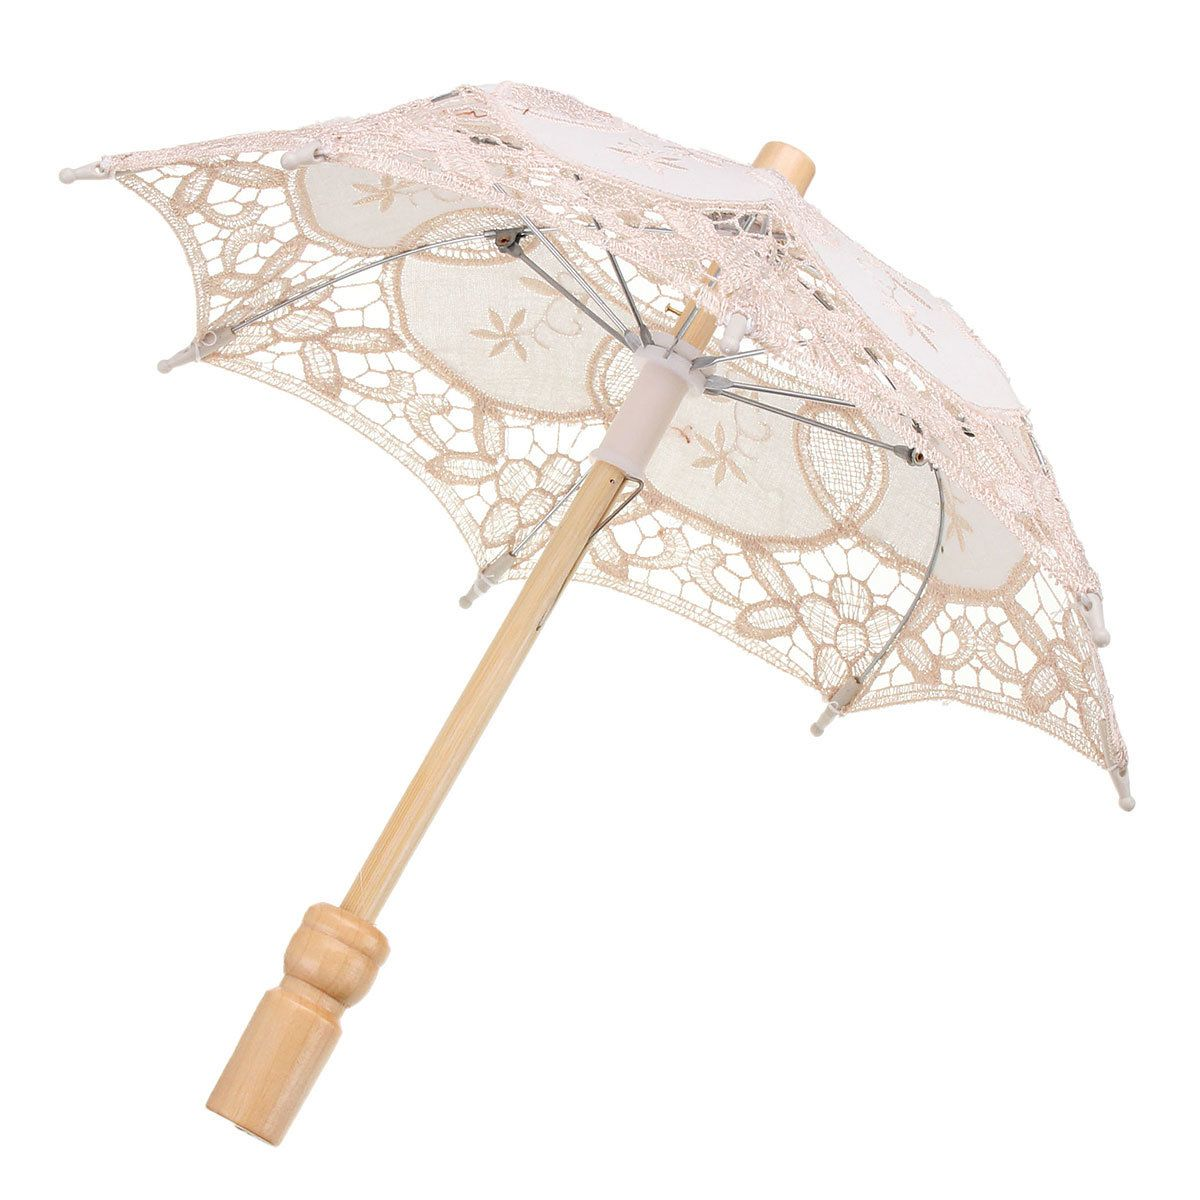 Lace Elegant Embroidered Parasol Umbrella For Bridal Wedding Party ...